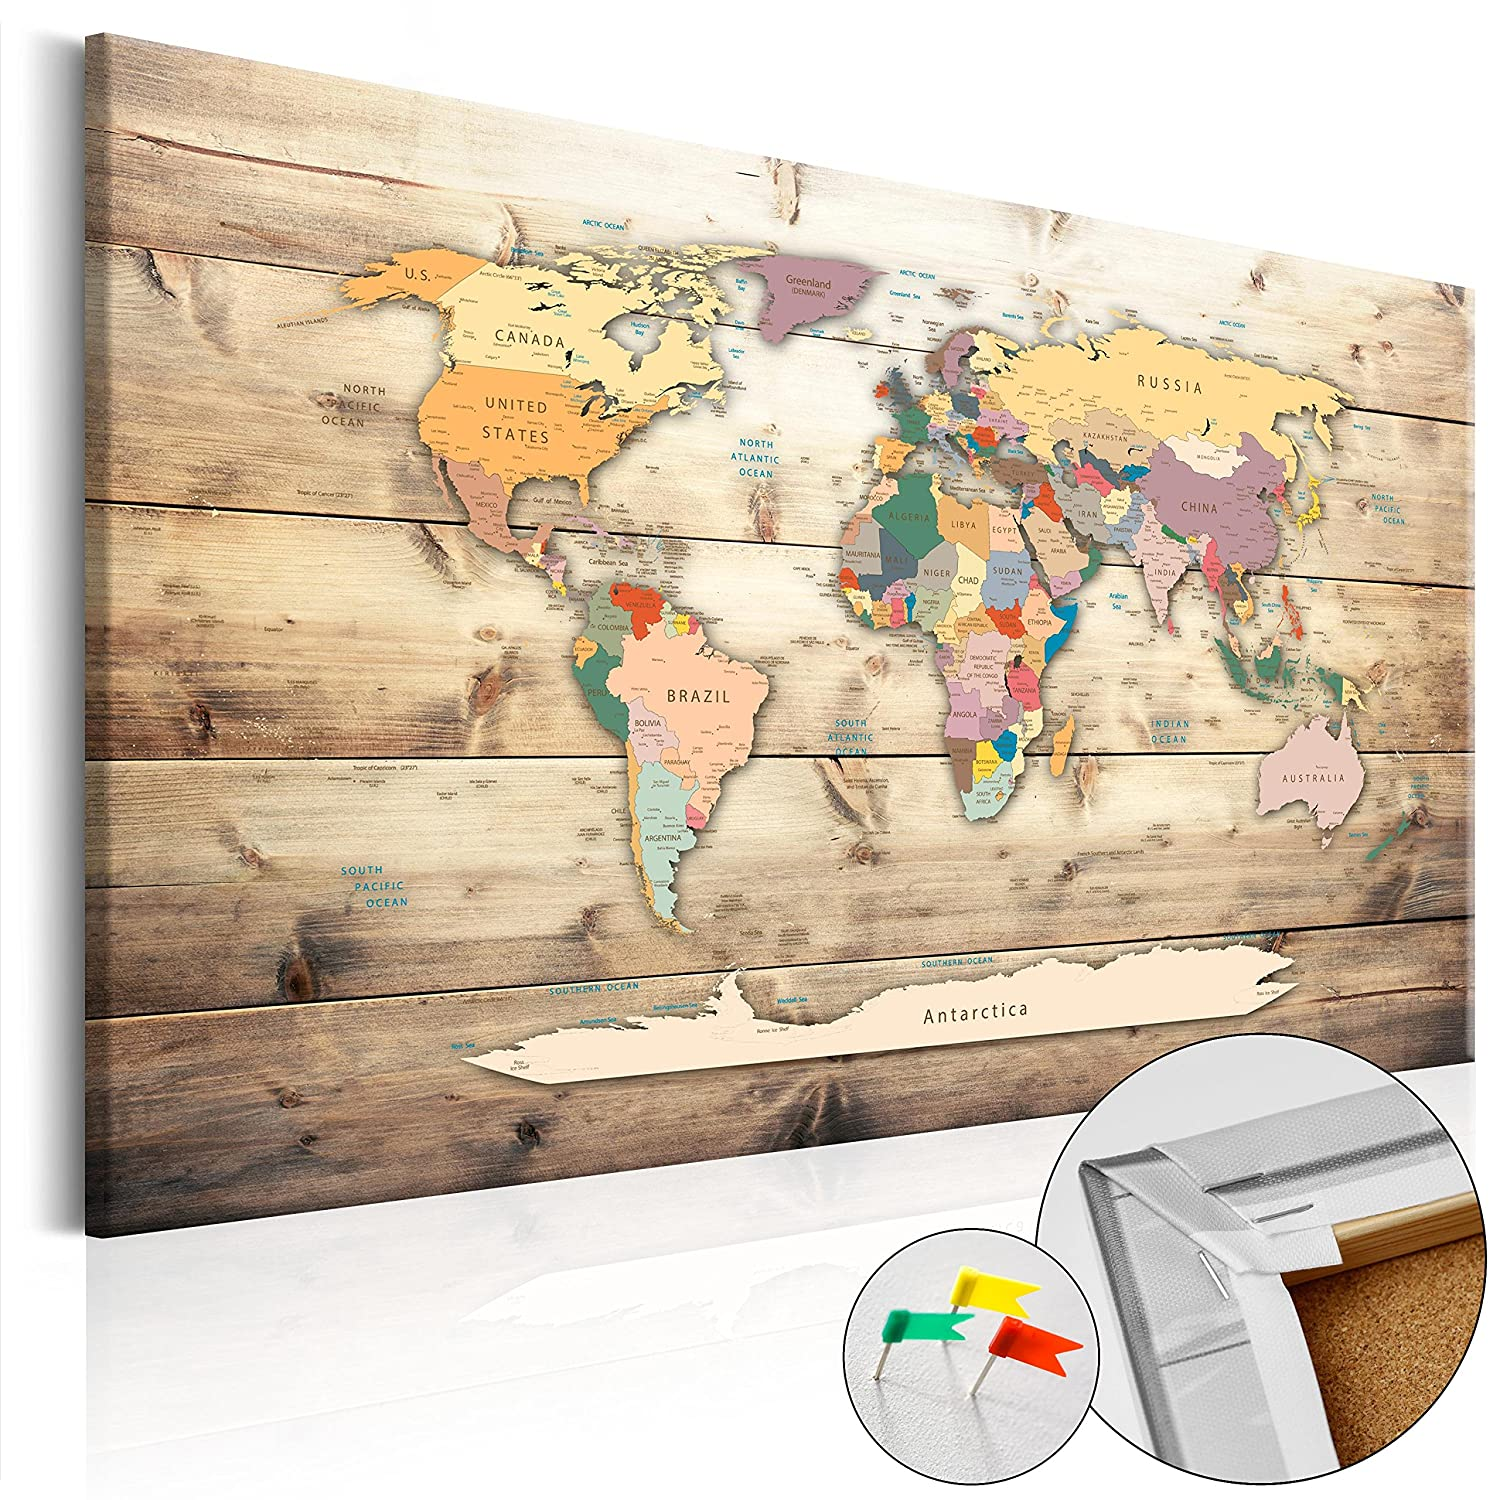 Pinboard map 60x40 cm - 1 Piece -Image Printed on Non-Woven Canvas with Cork Backing World map k-B-0009-p-b Poster Pin Board 23.6 by 15.7 in murando